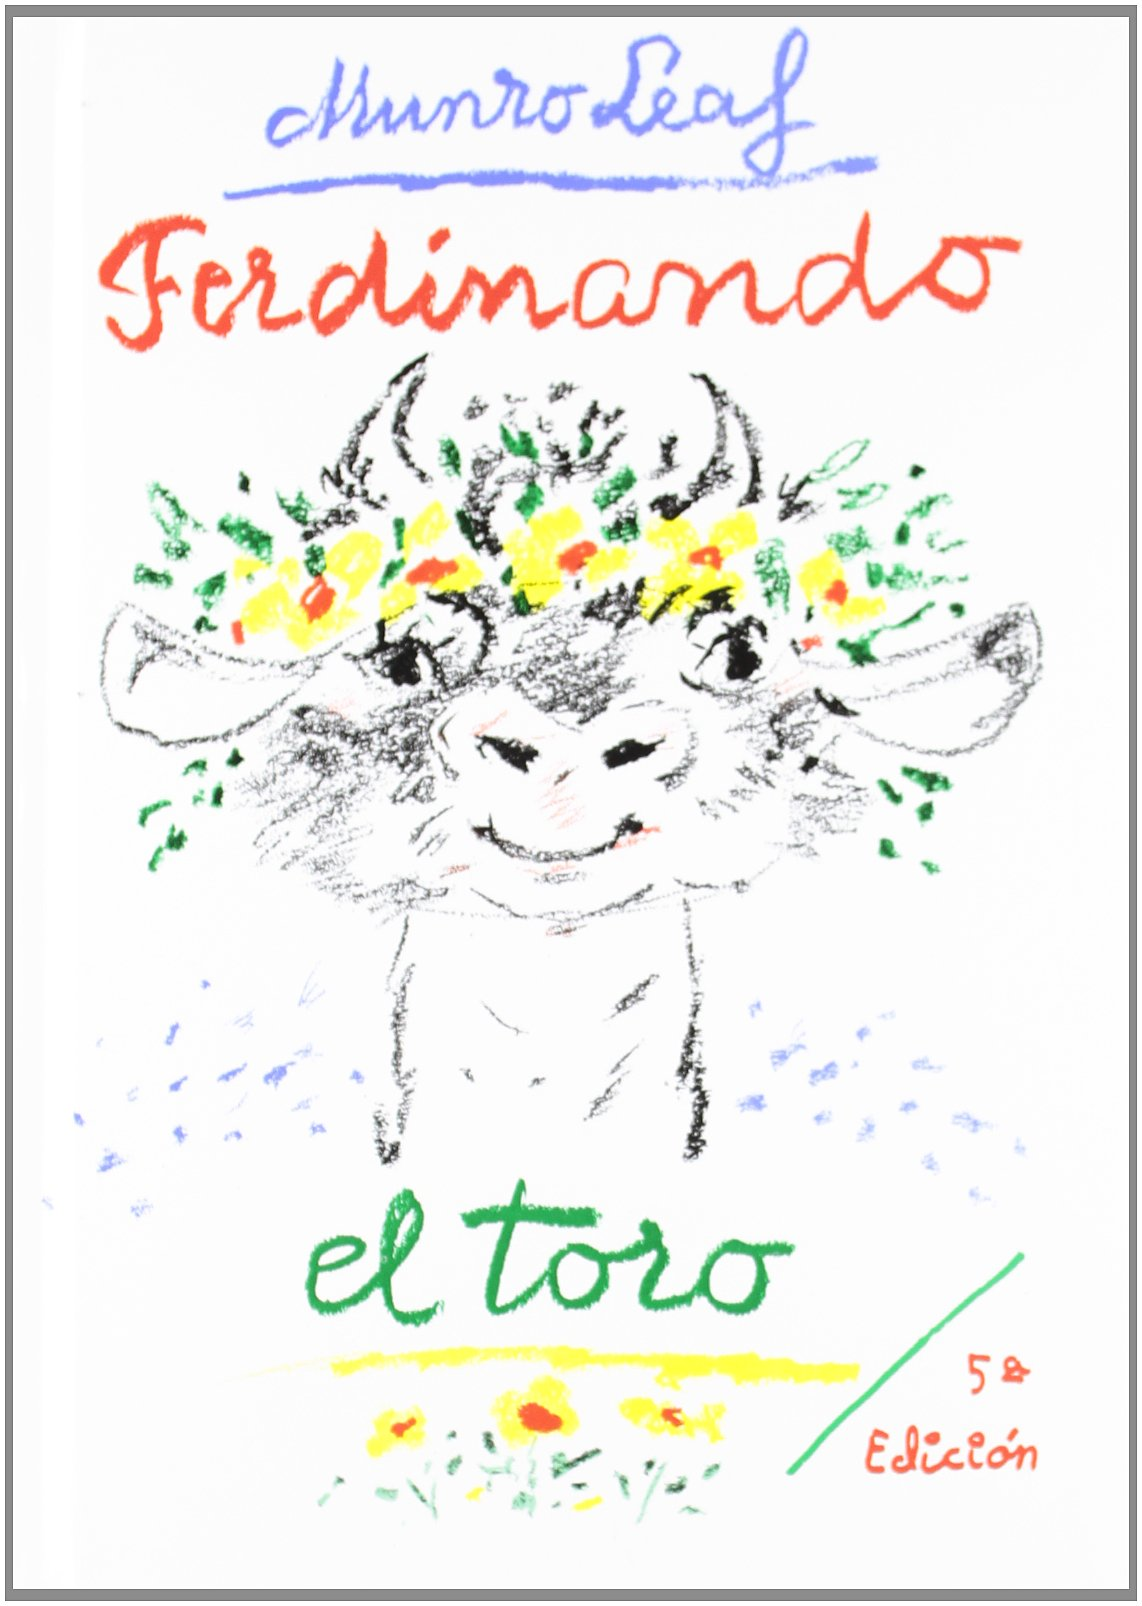 ferdinando-el-toro-fernando-the-bull-spanish-edition